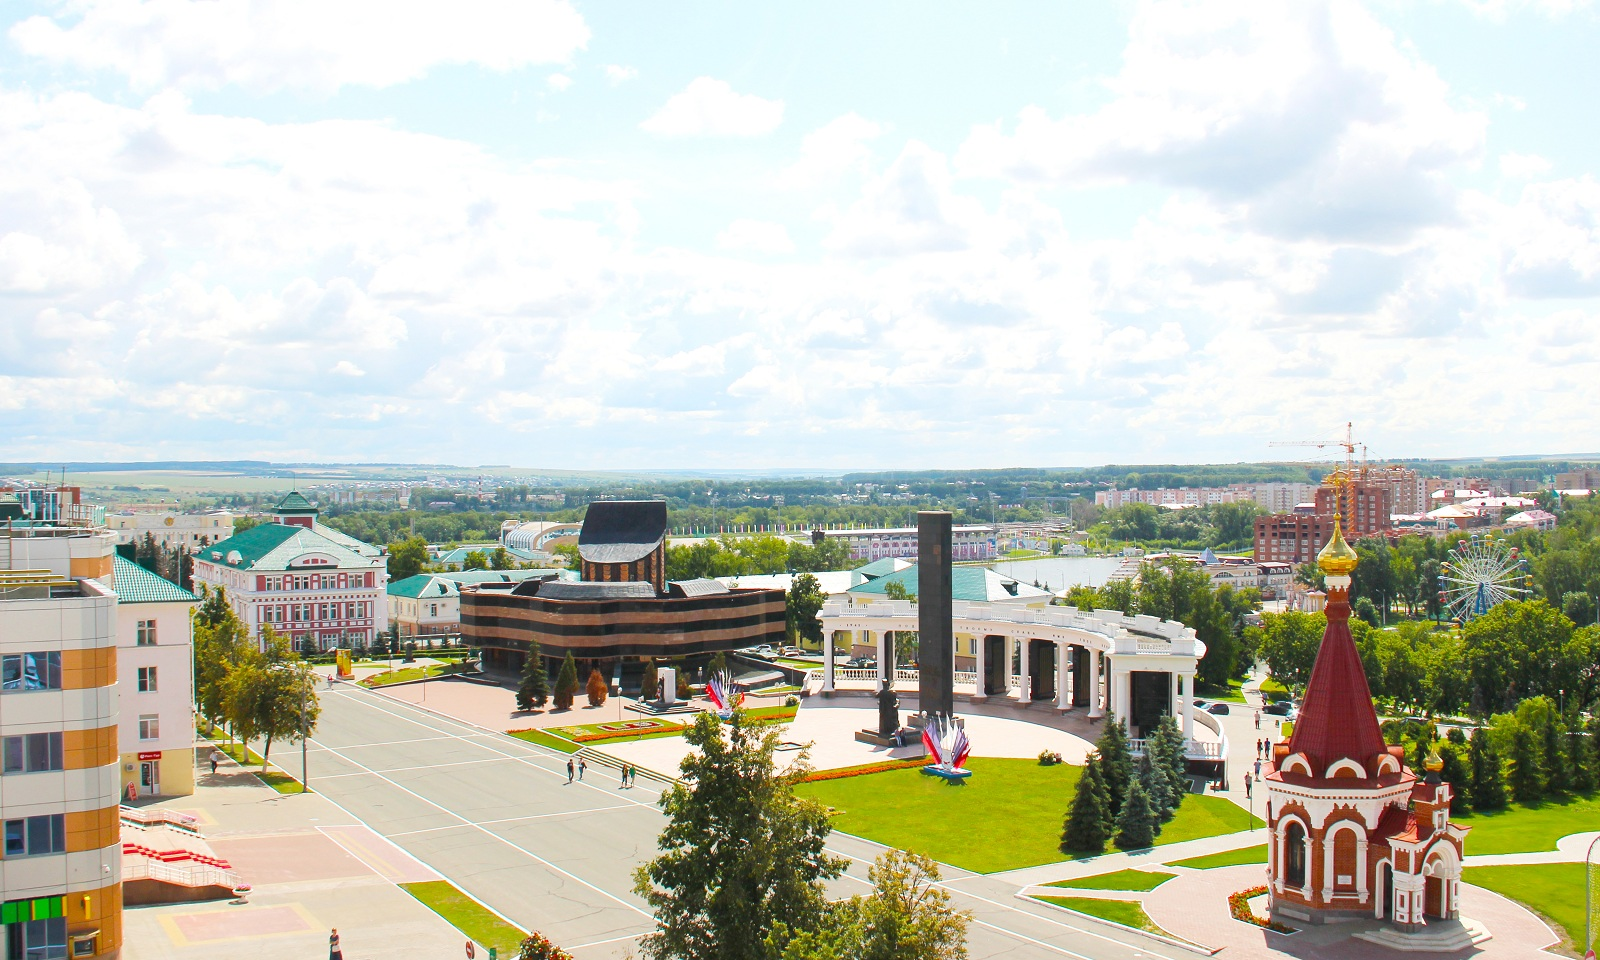 Sovetskaya_Square_the_main_city_square_that_exists_almost_since_the _city's_establishment_in_the_17th_century_It_hosts_major_public_festivals_cultural_and_sports_events.jpg